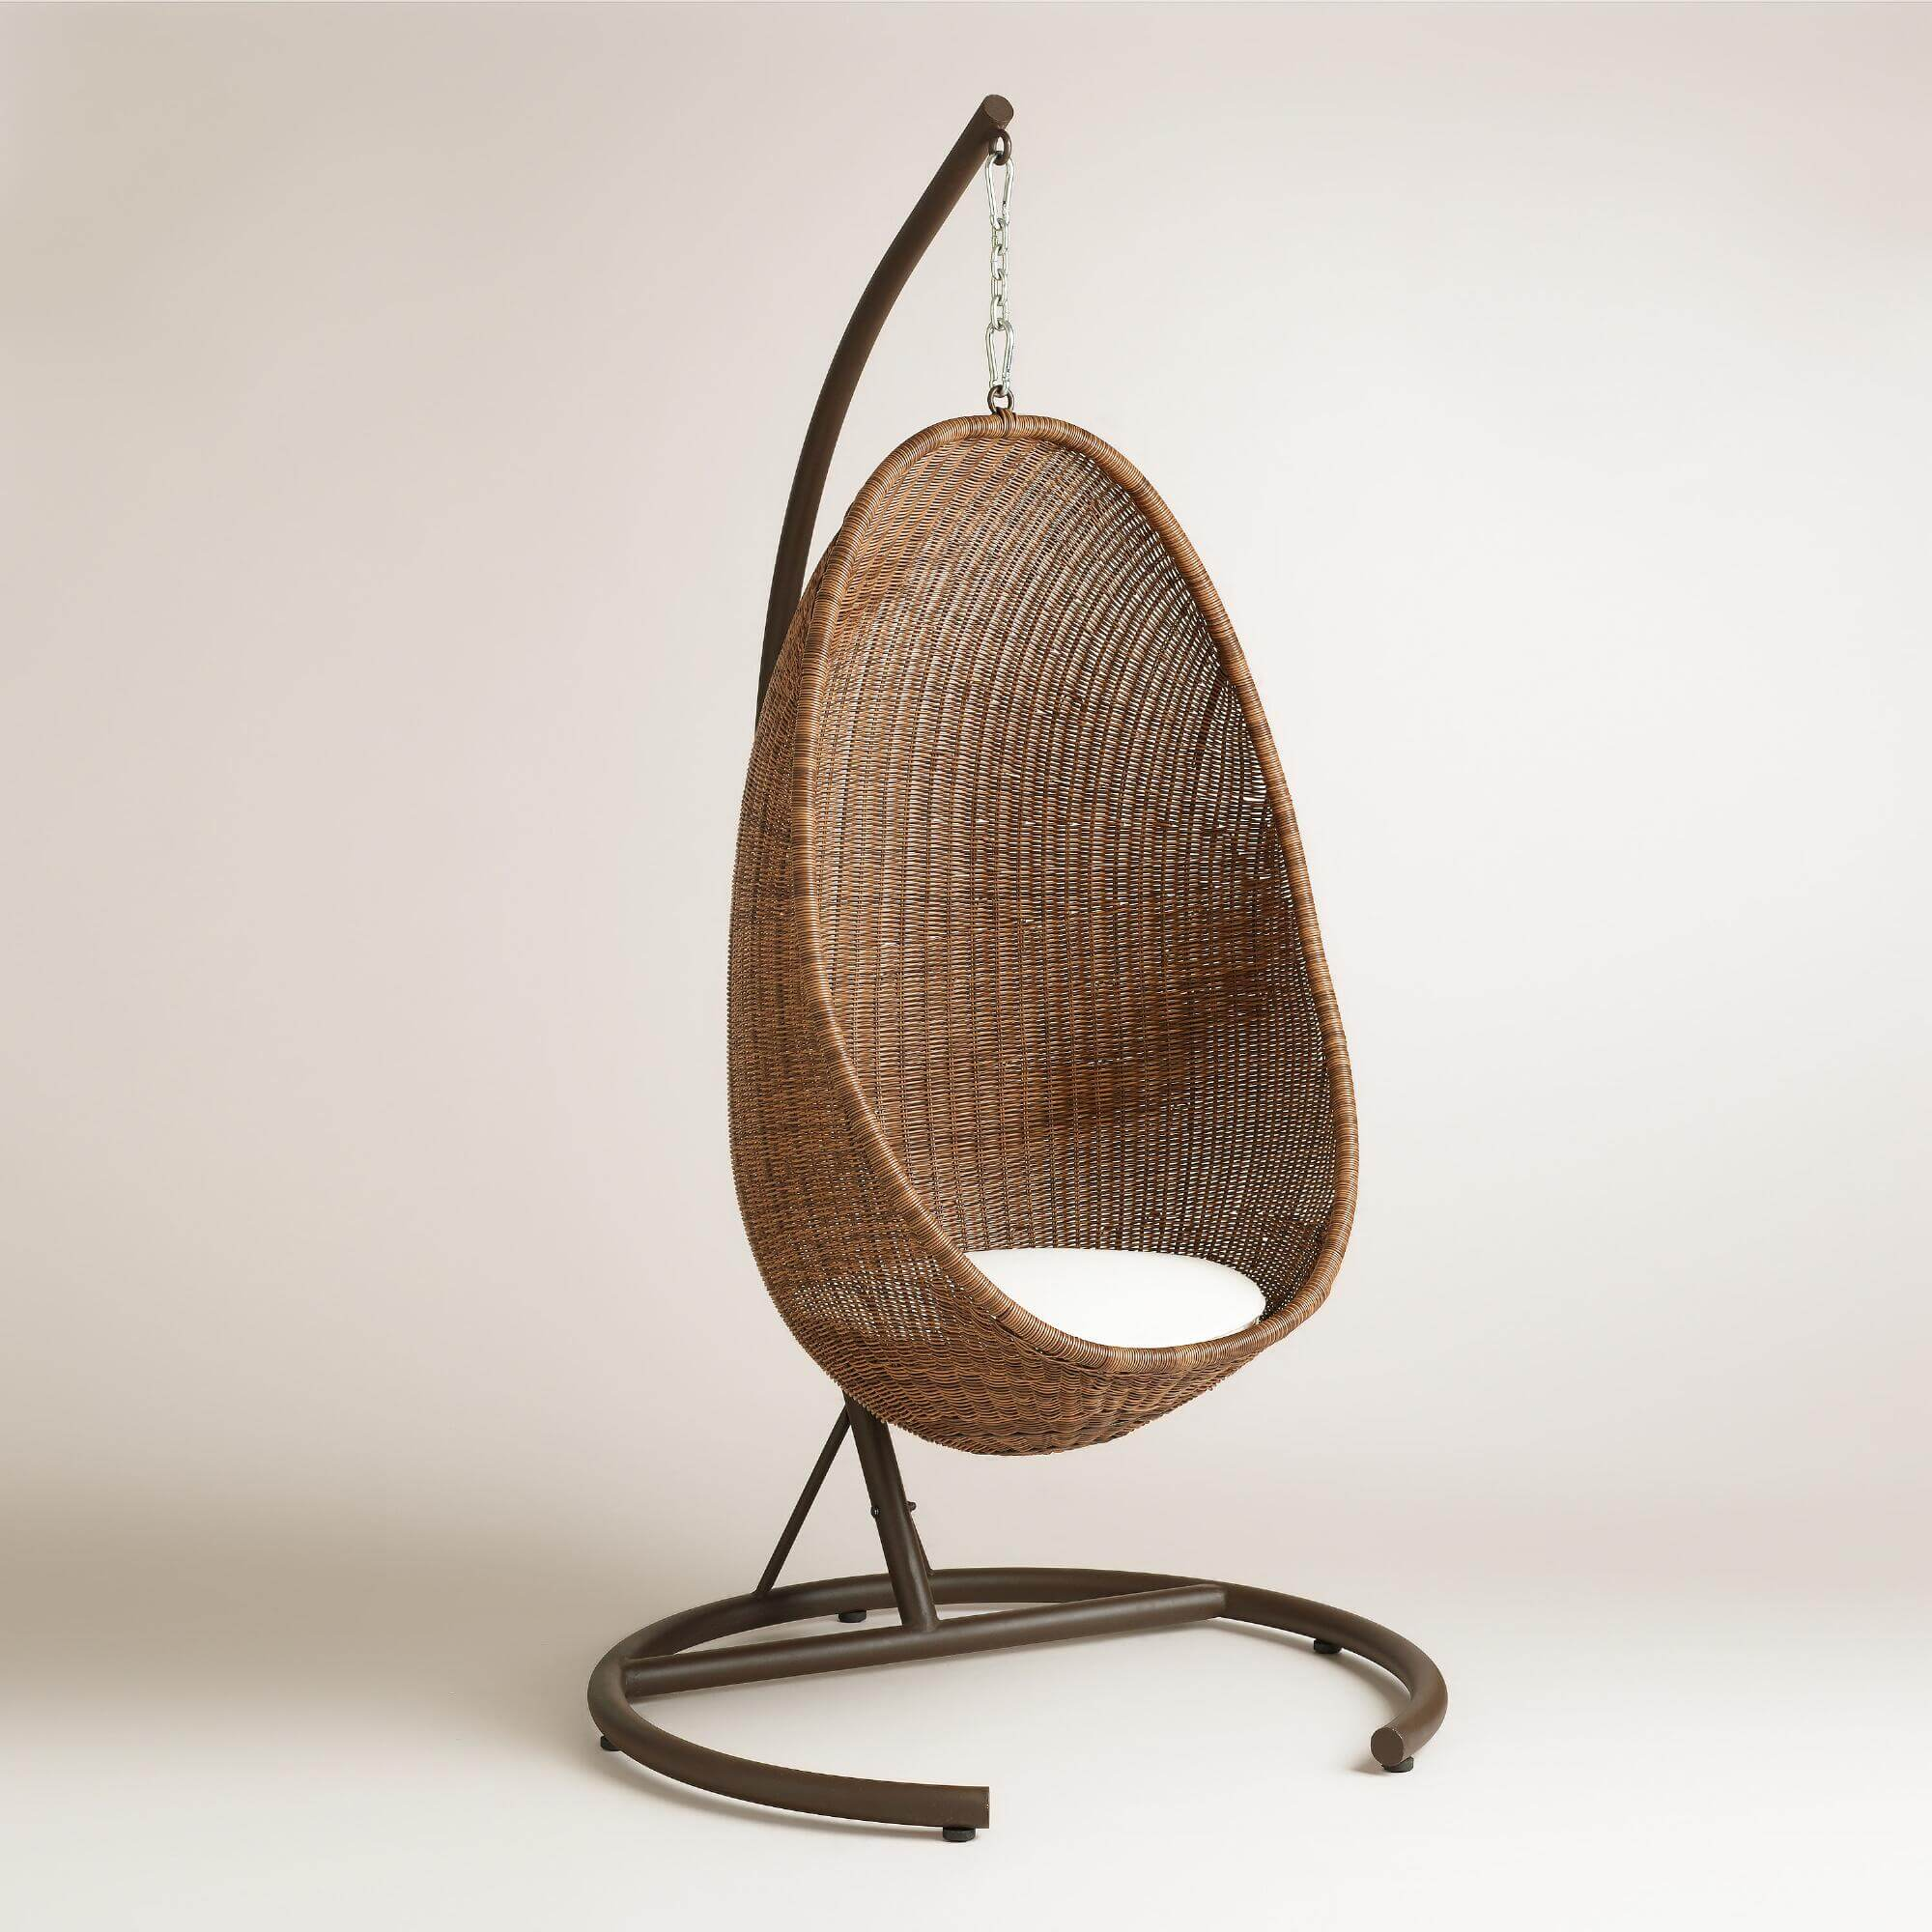 Egg Basket Chair Best Hanging Chair Reviews And Guide The Hammock Expert